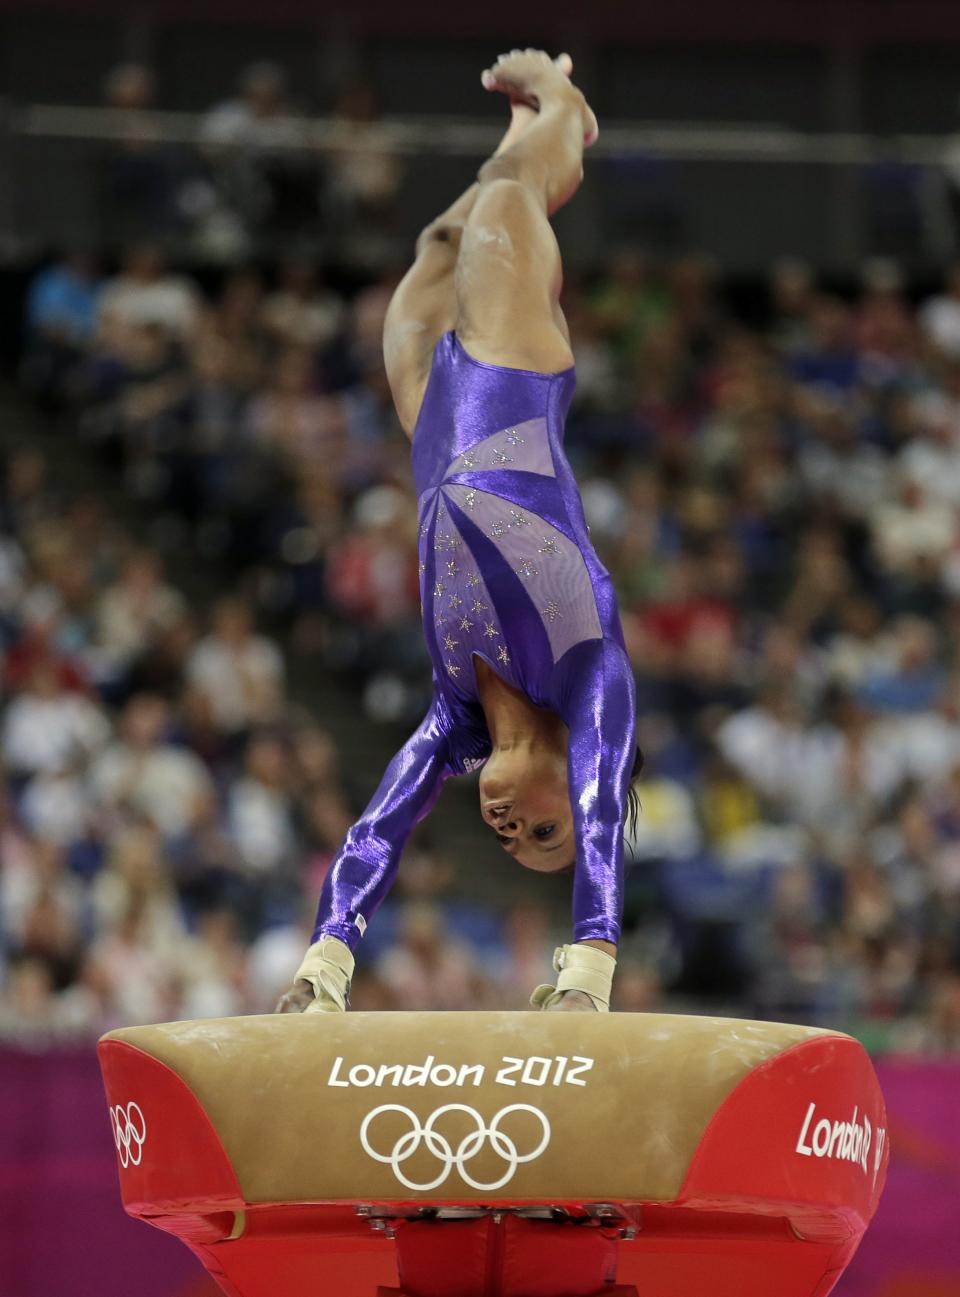 U.S. gymnast Gabrielle Douglas performs on the vault during the Artistic Gymnastics women's qualification at the 2012 Summer Olympics, Sunday, July 29, 2012, in London. (AP Photo/Gregory Bull)